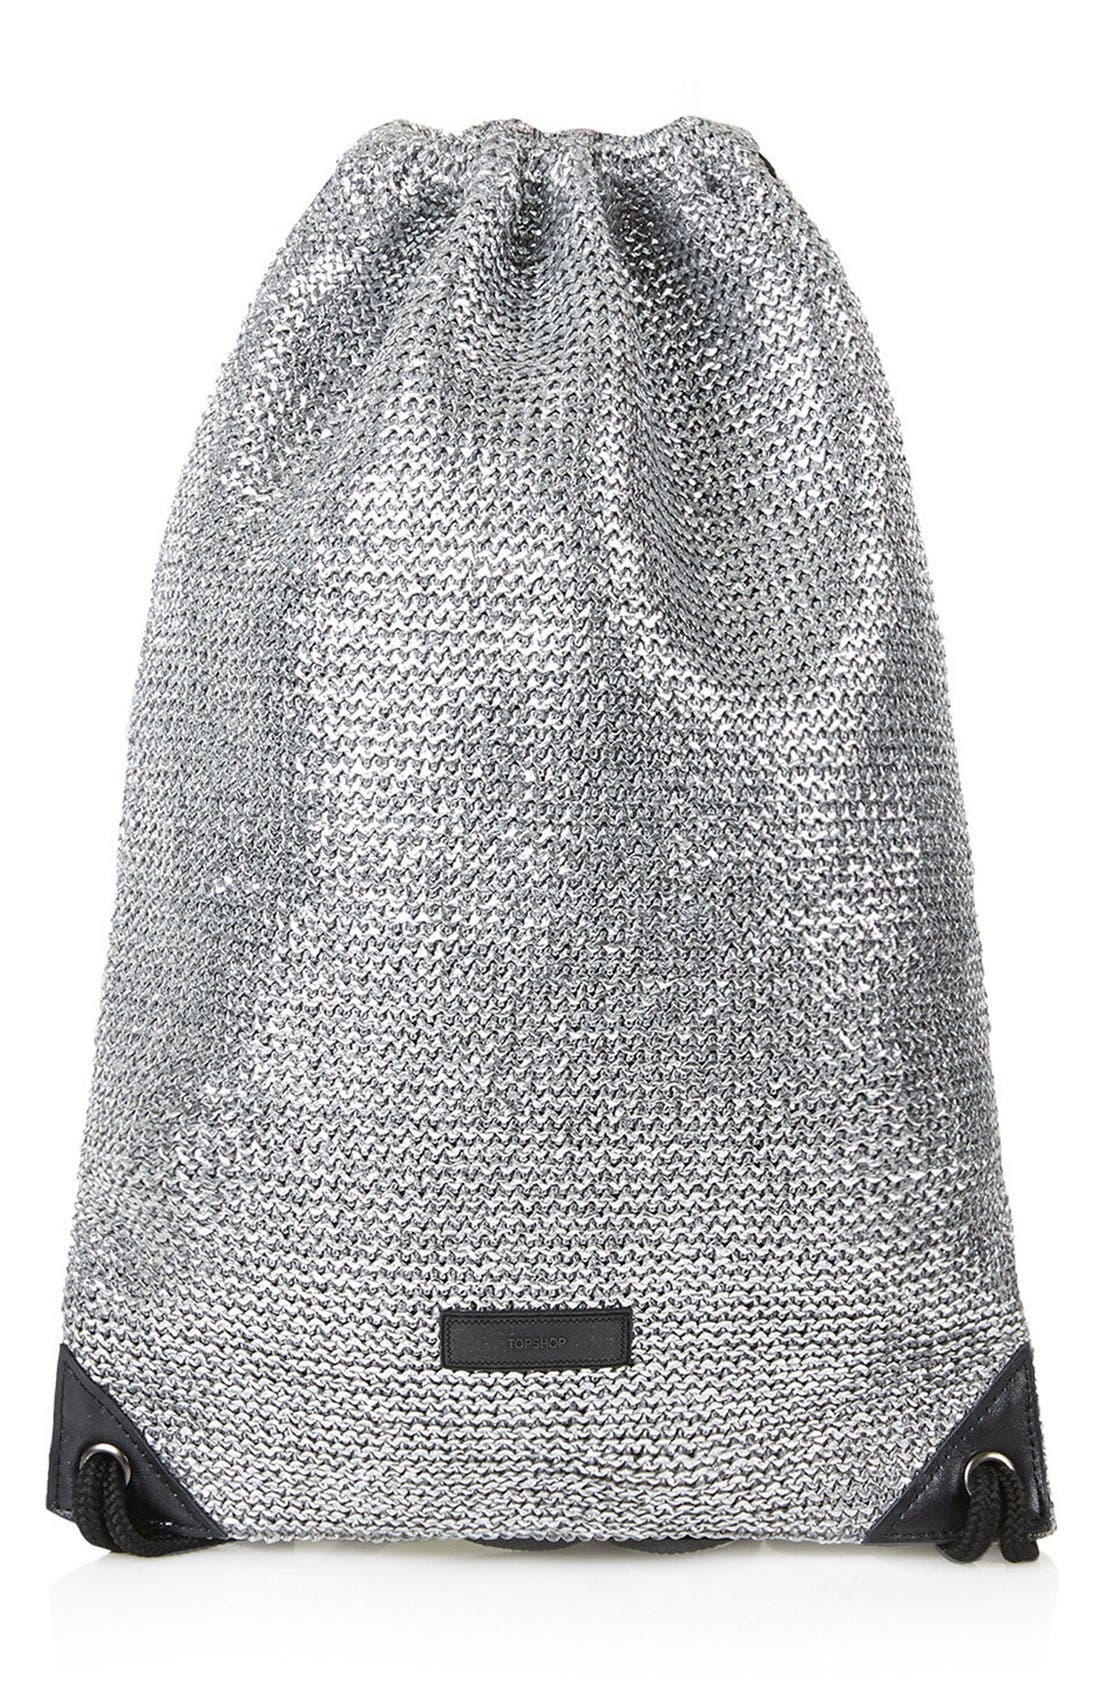 Alternate Image 1 Selected - Topshop 'Metallix' Woven Drawstring Bag